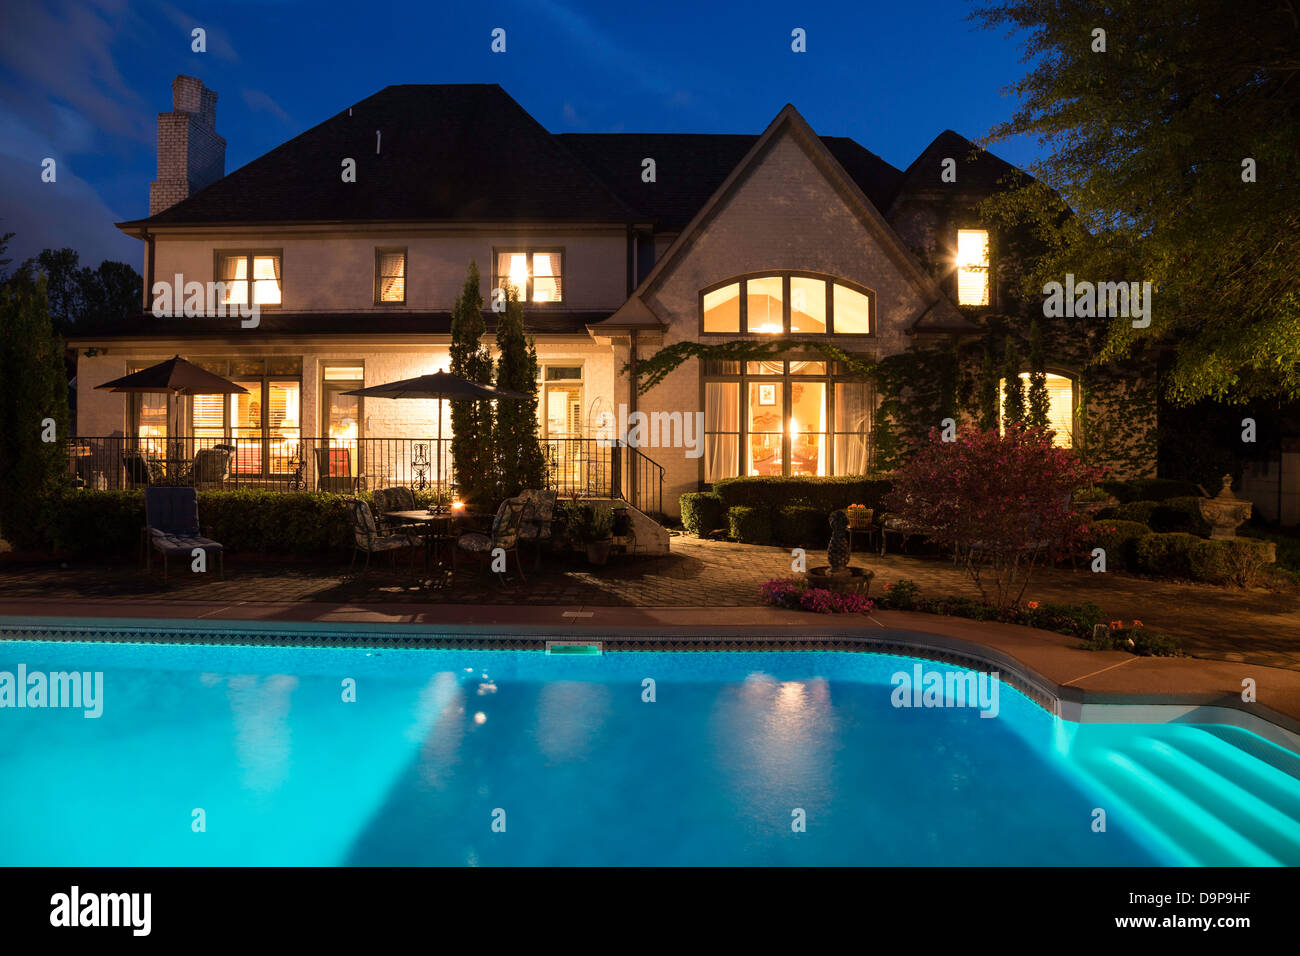 Luxury Home With Swimming Pool At Night Usa Stock Photo Alamy